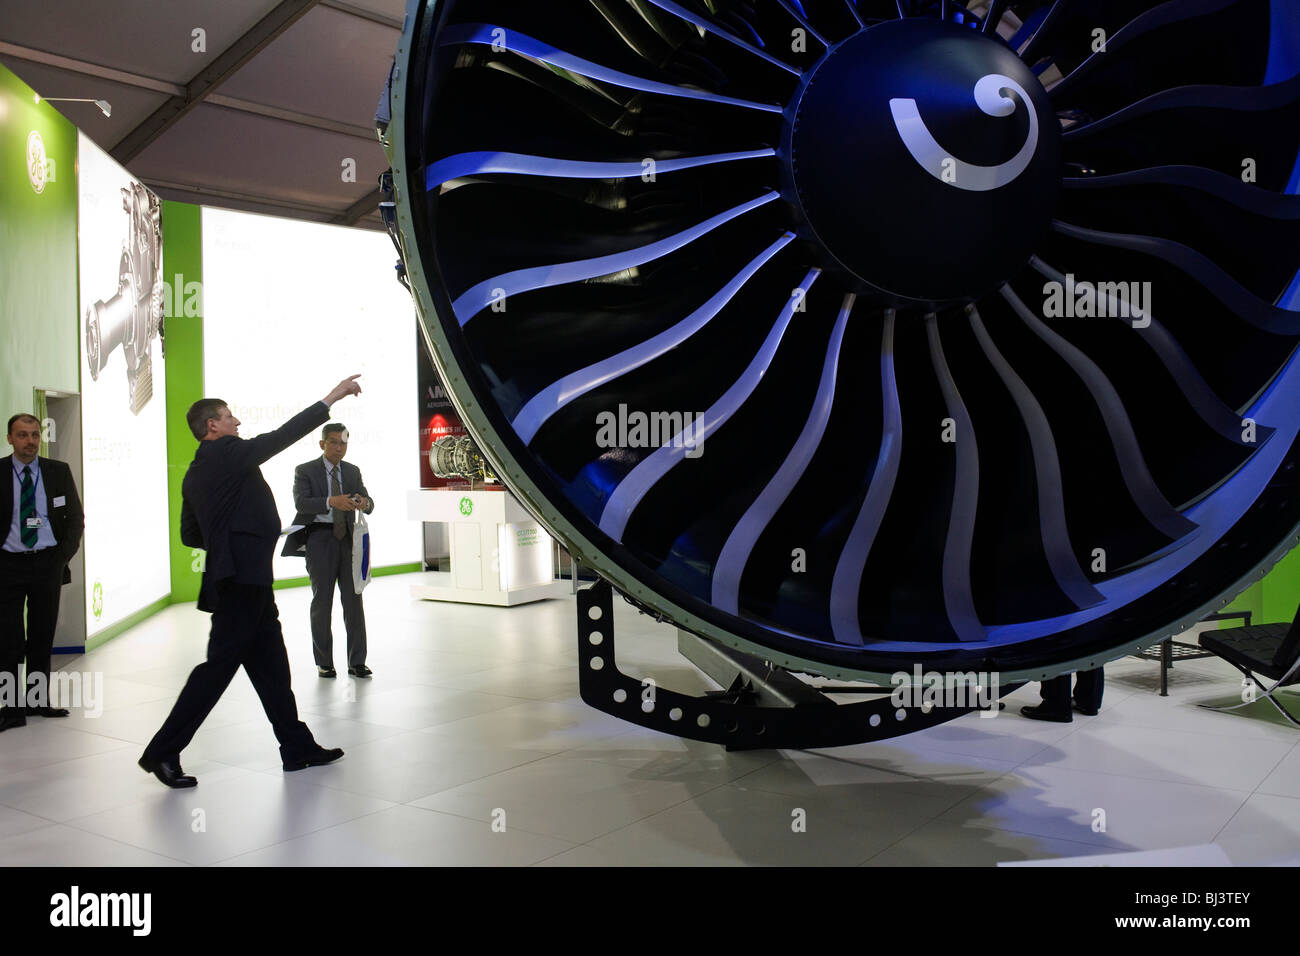 A visitor to the General Electric exhibition stand points to a feature on a massive, GE90-115B turbofan jet engine. - Stock Image